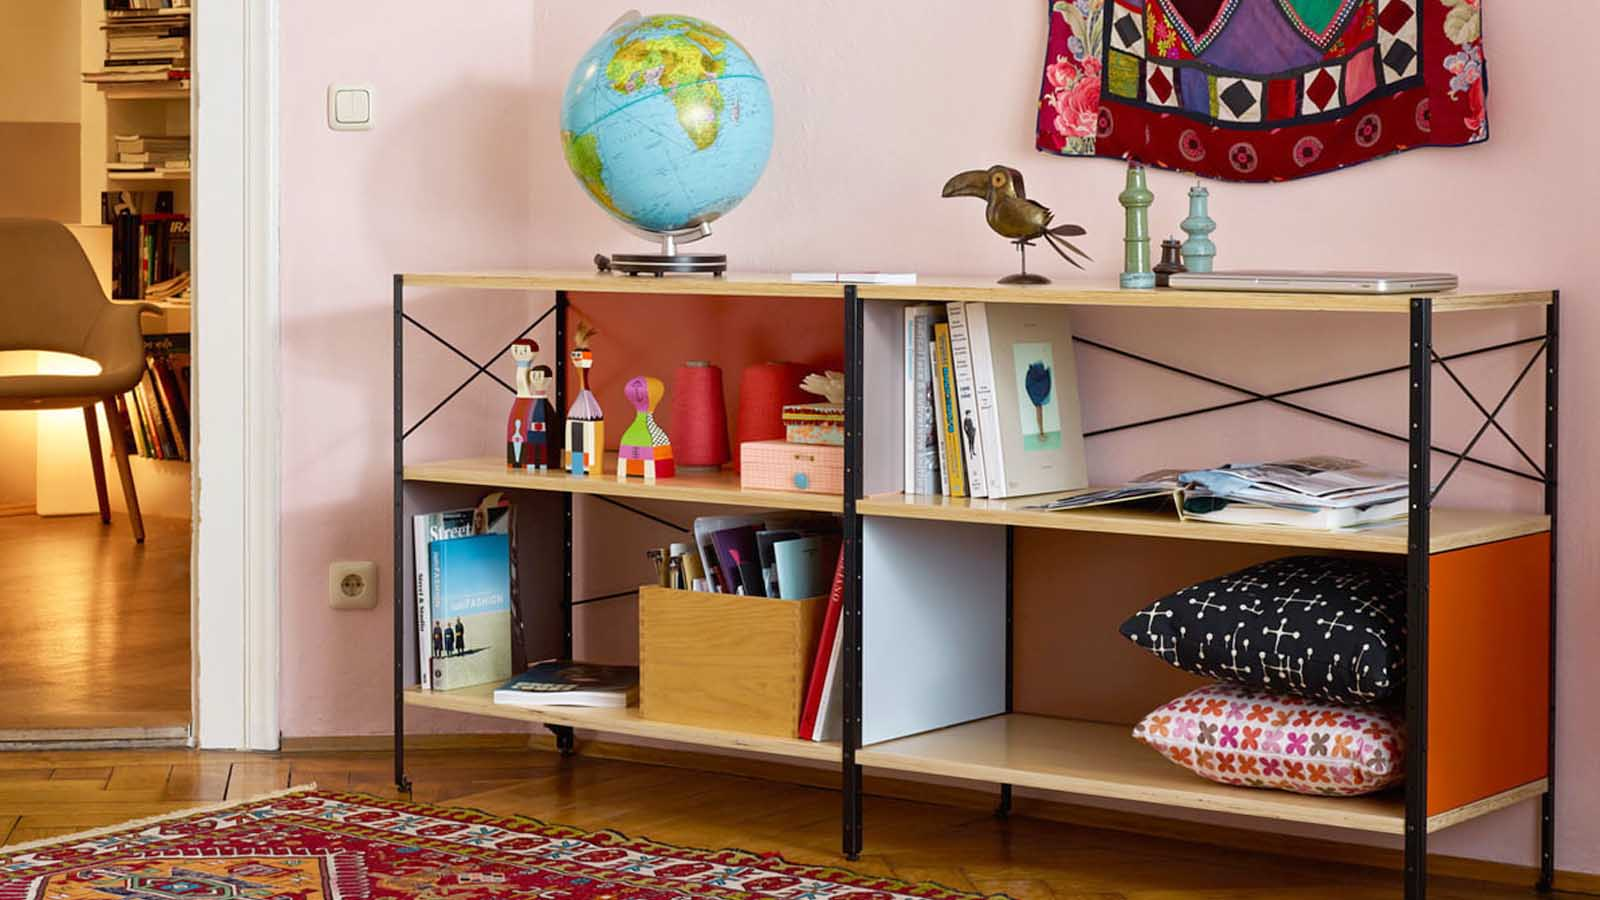 Vitra Eames Storage Unit Shelf Low Bookcase_wooden Dolls_rug